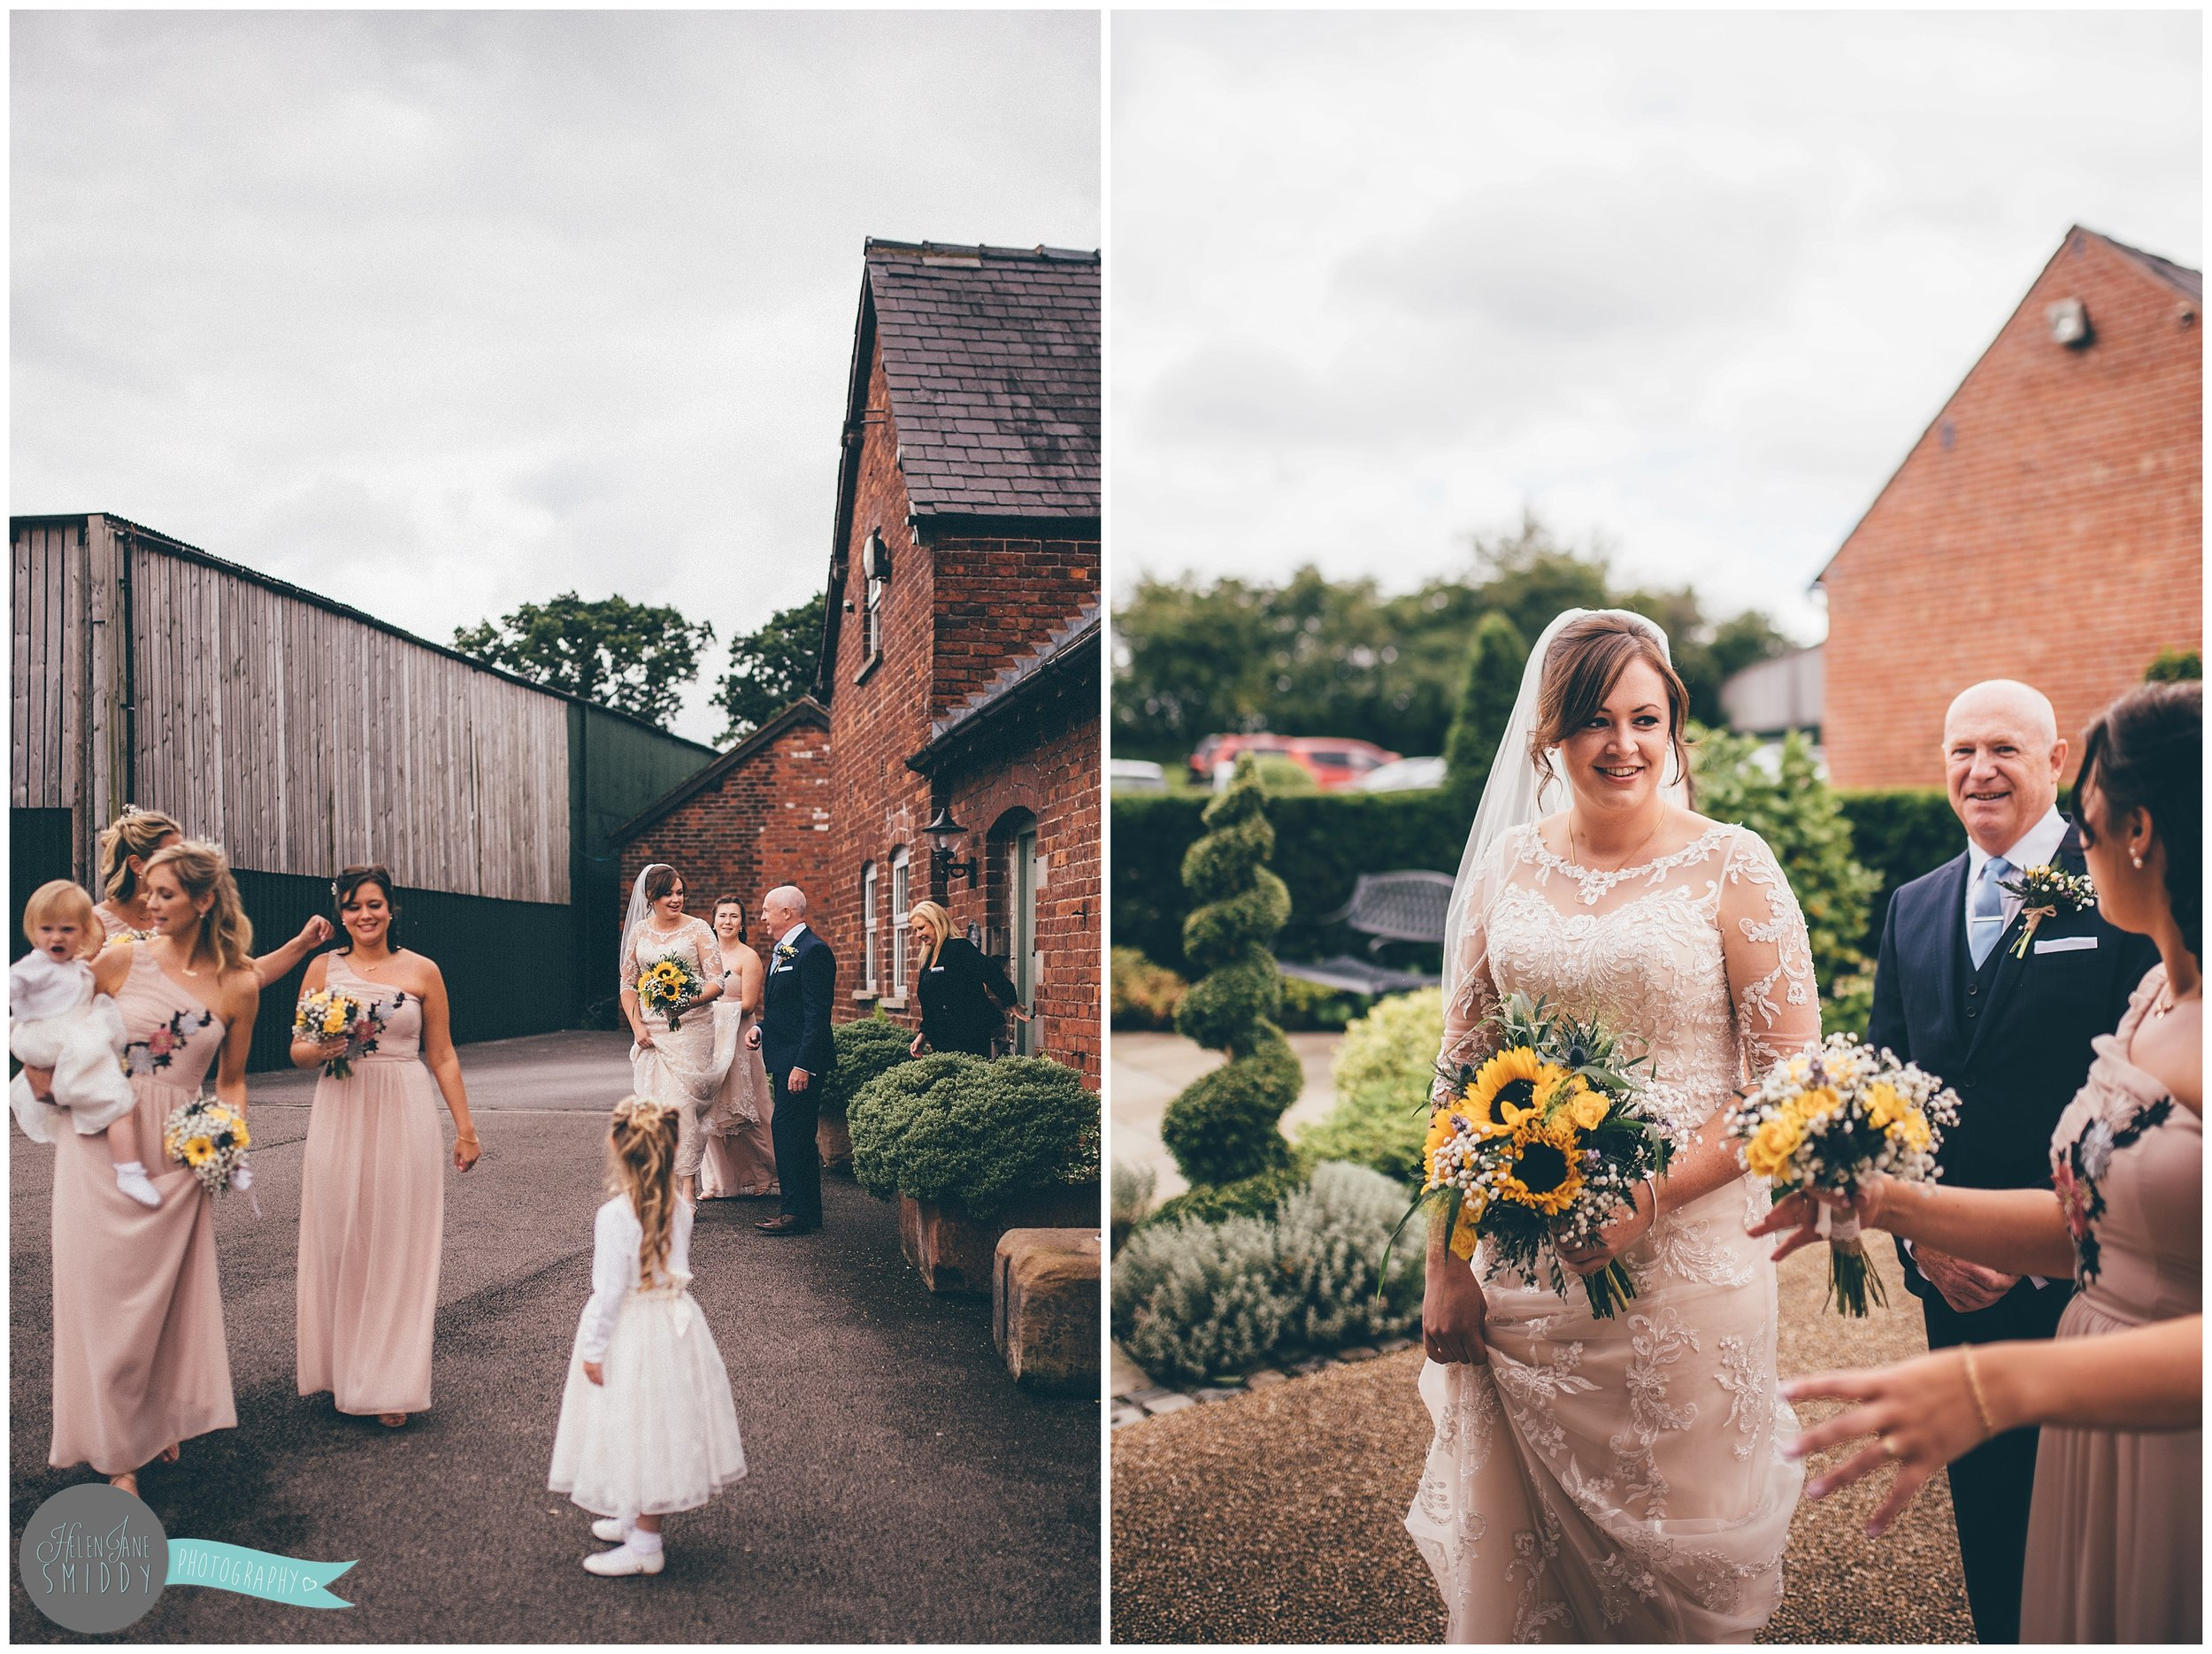 cheshire-cheshirewedding-cheshireweddingphotographer-cheshire-wedding-photographer-sandhole-oak-barn-sandholeoakbarn-wedding-photography-weddingphotography-bride-groom-brideandgroom-relaxed-rustic-wedding-sunflowers-bouncy-castle-DIY